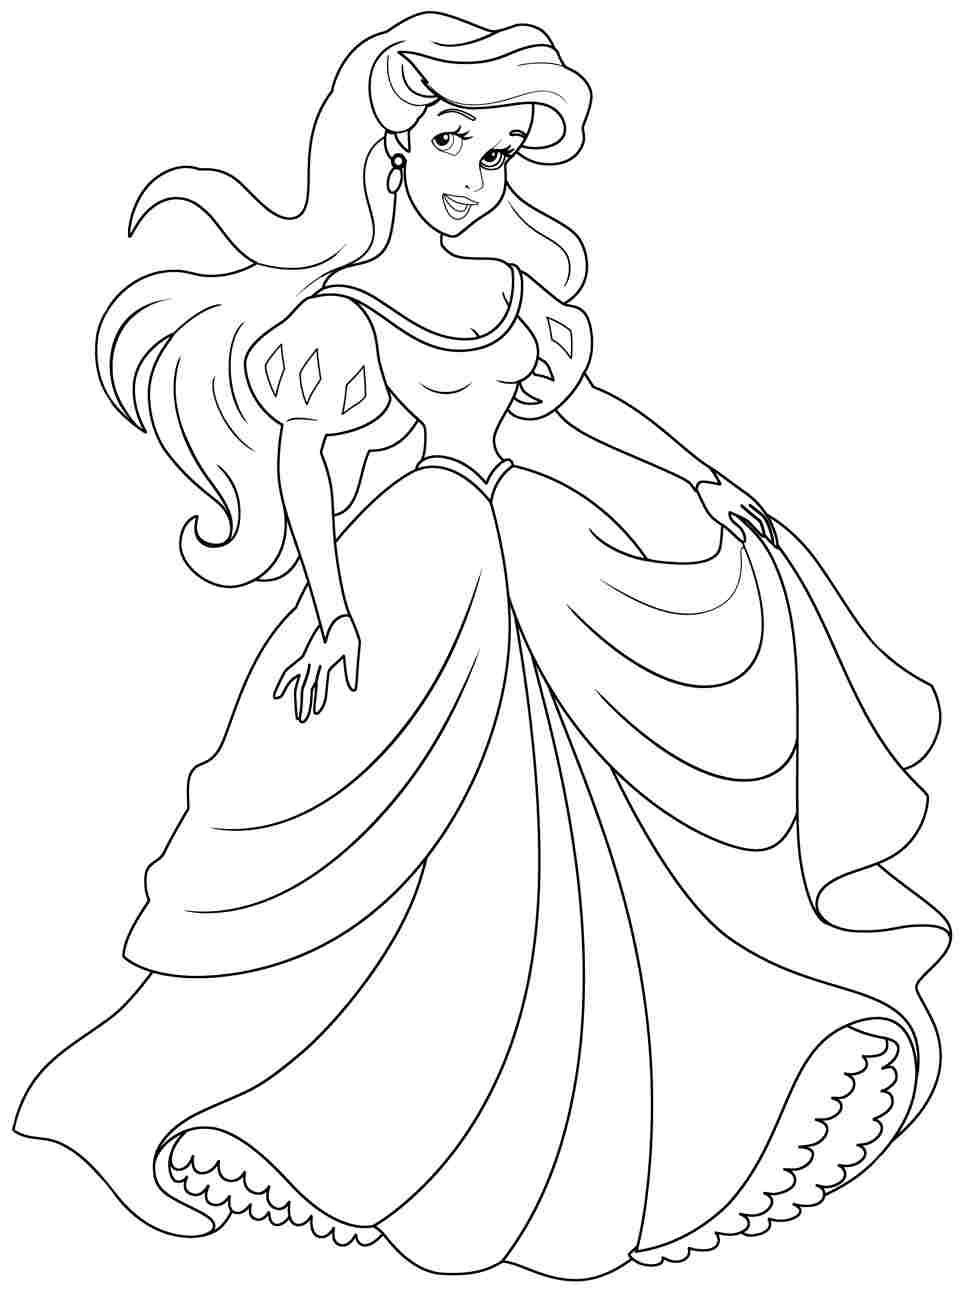 disney princess ariel coloring pages Mlarbok fr vuxna och barn